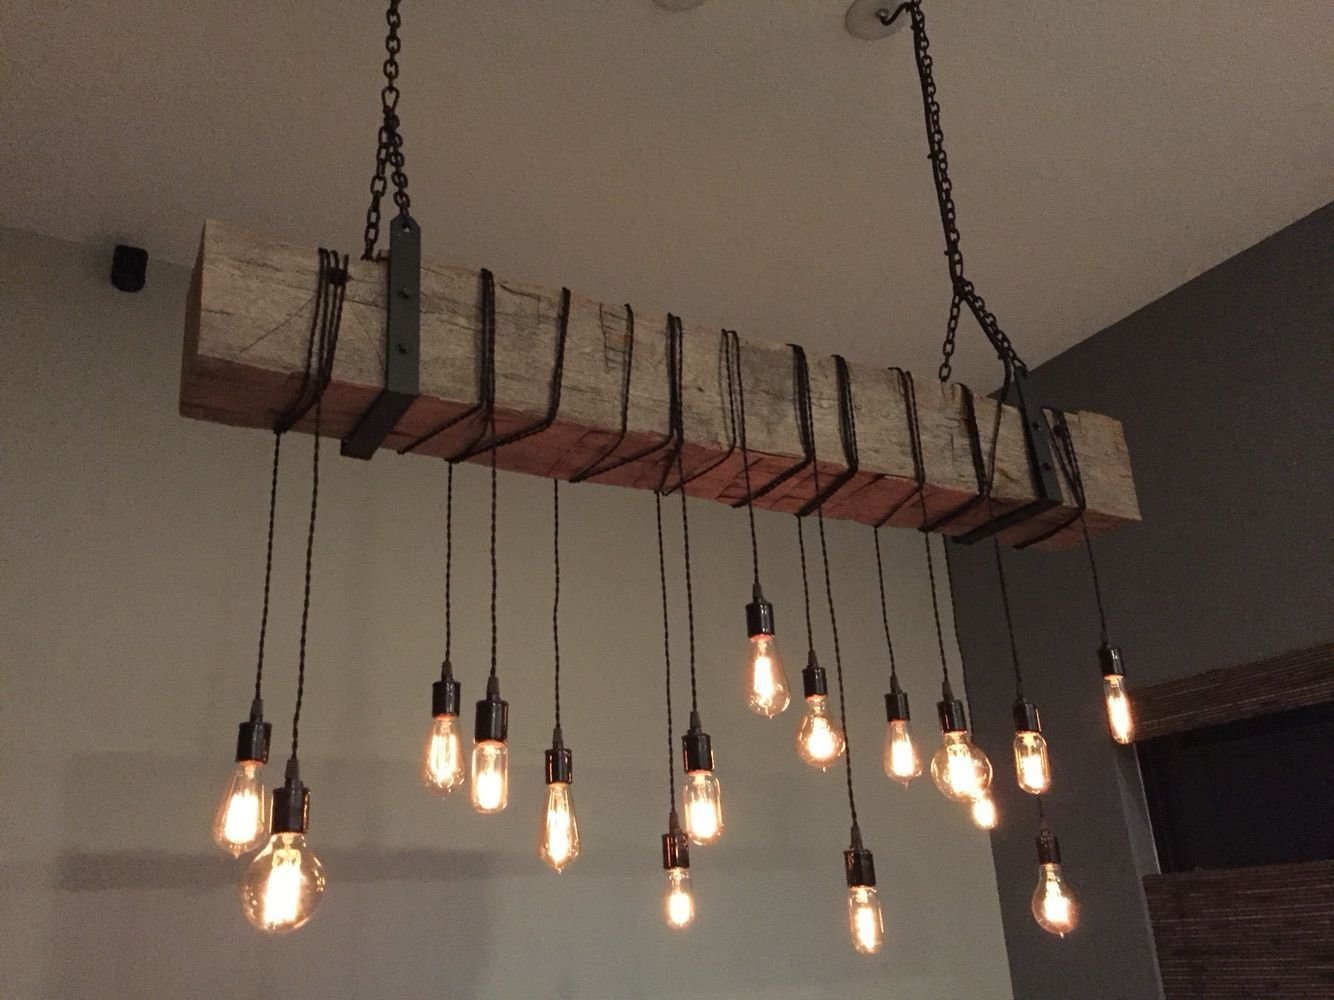 Charming rustic light fixtures for modern family room ideas design buy a custom reclaimed barn beam chandelier light fixture modern with rustic light